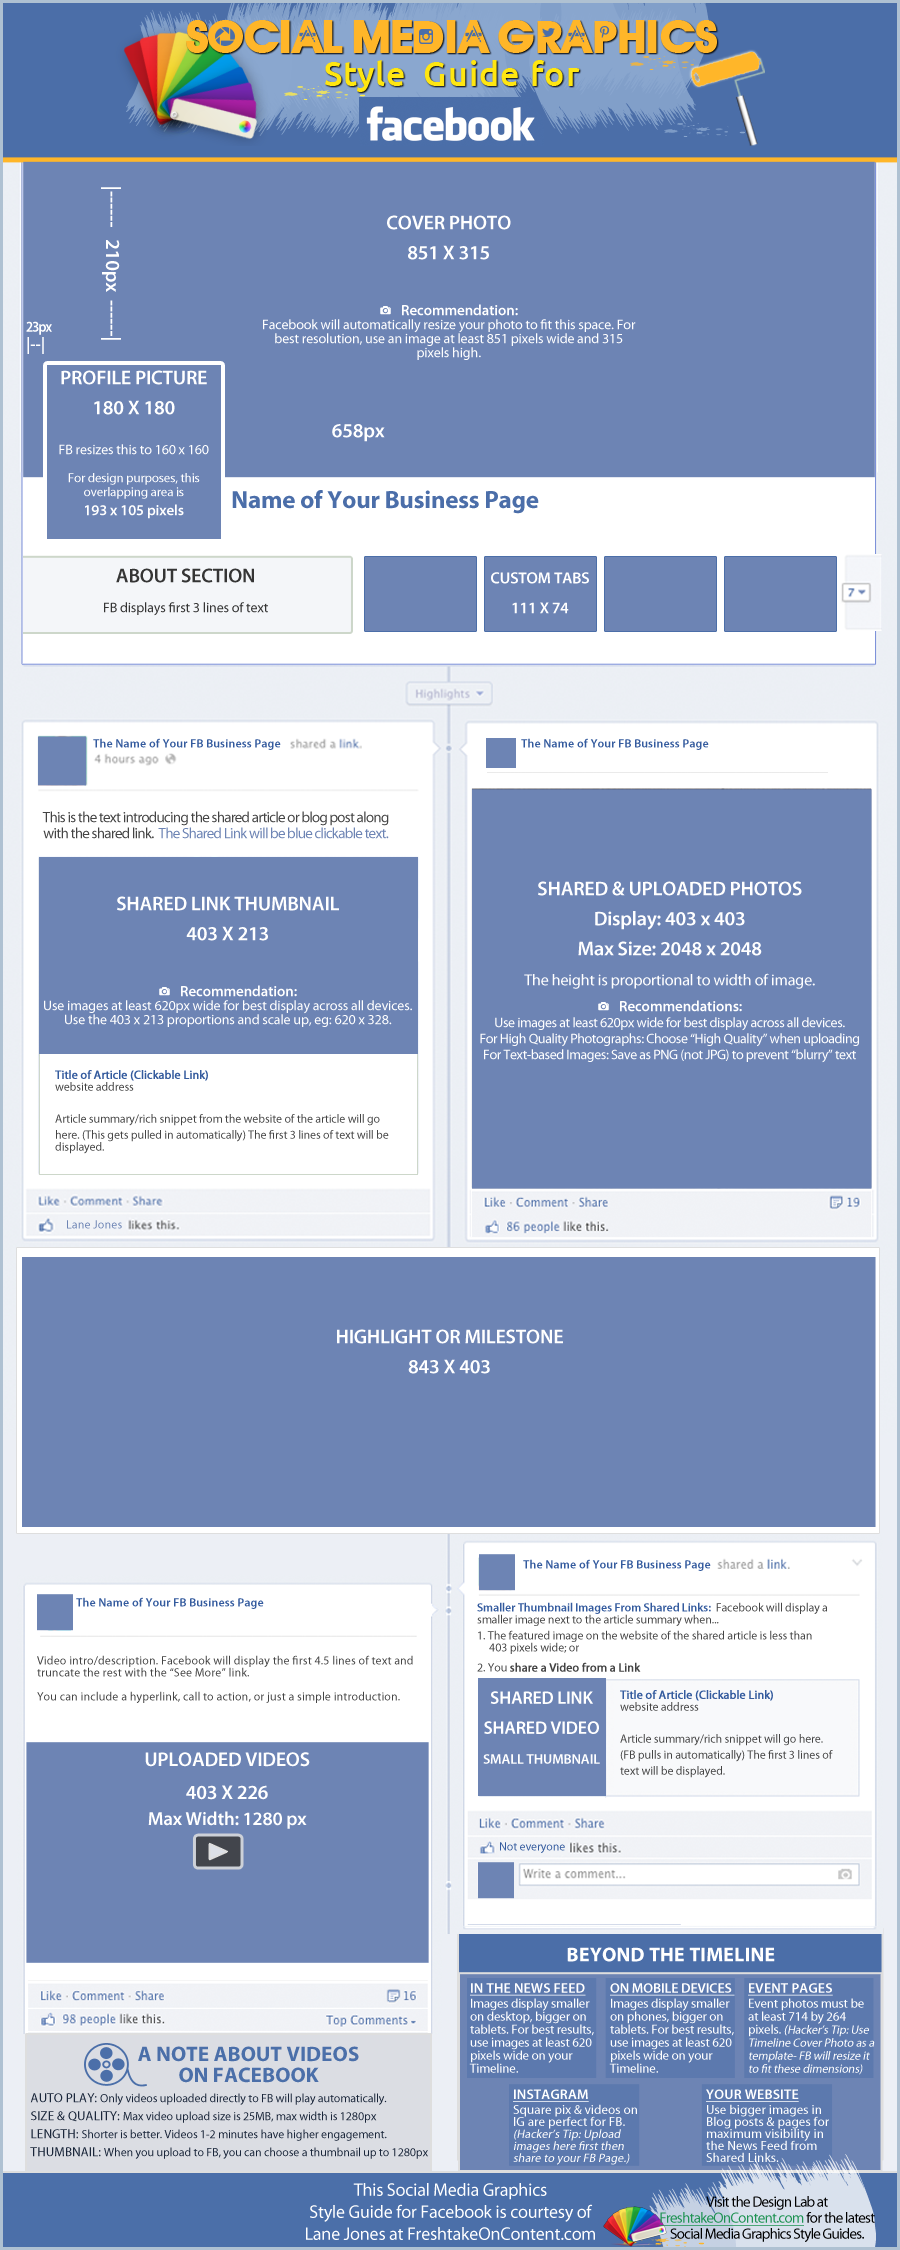 Brand Consultation Facebook image sizes, Style guides